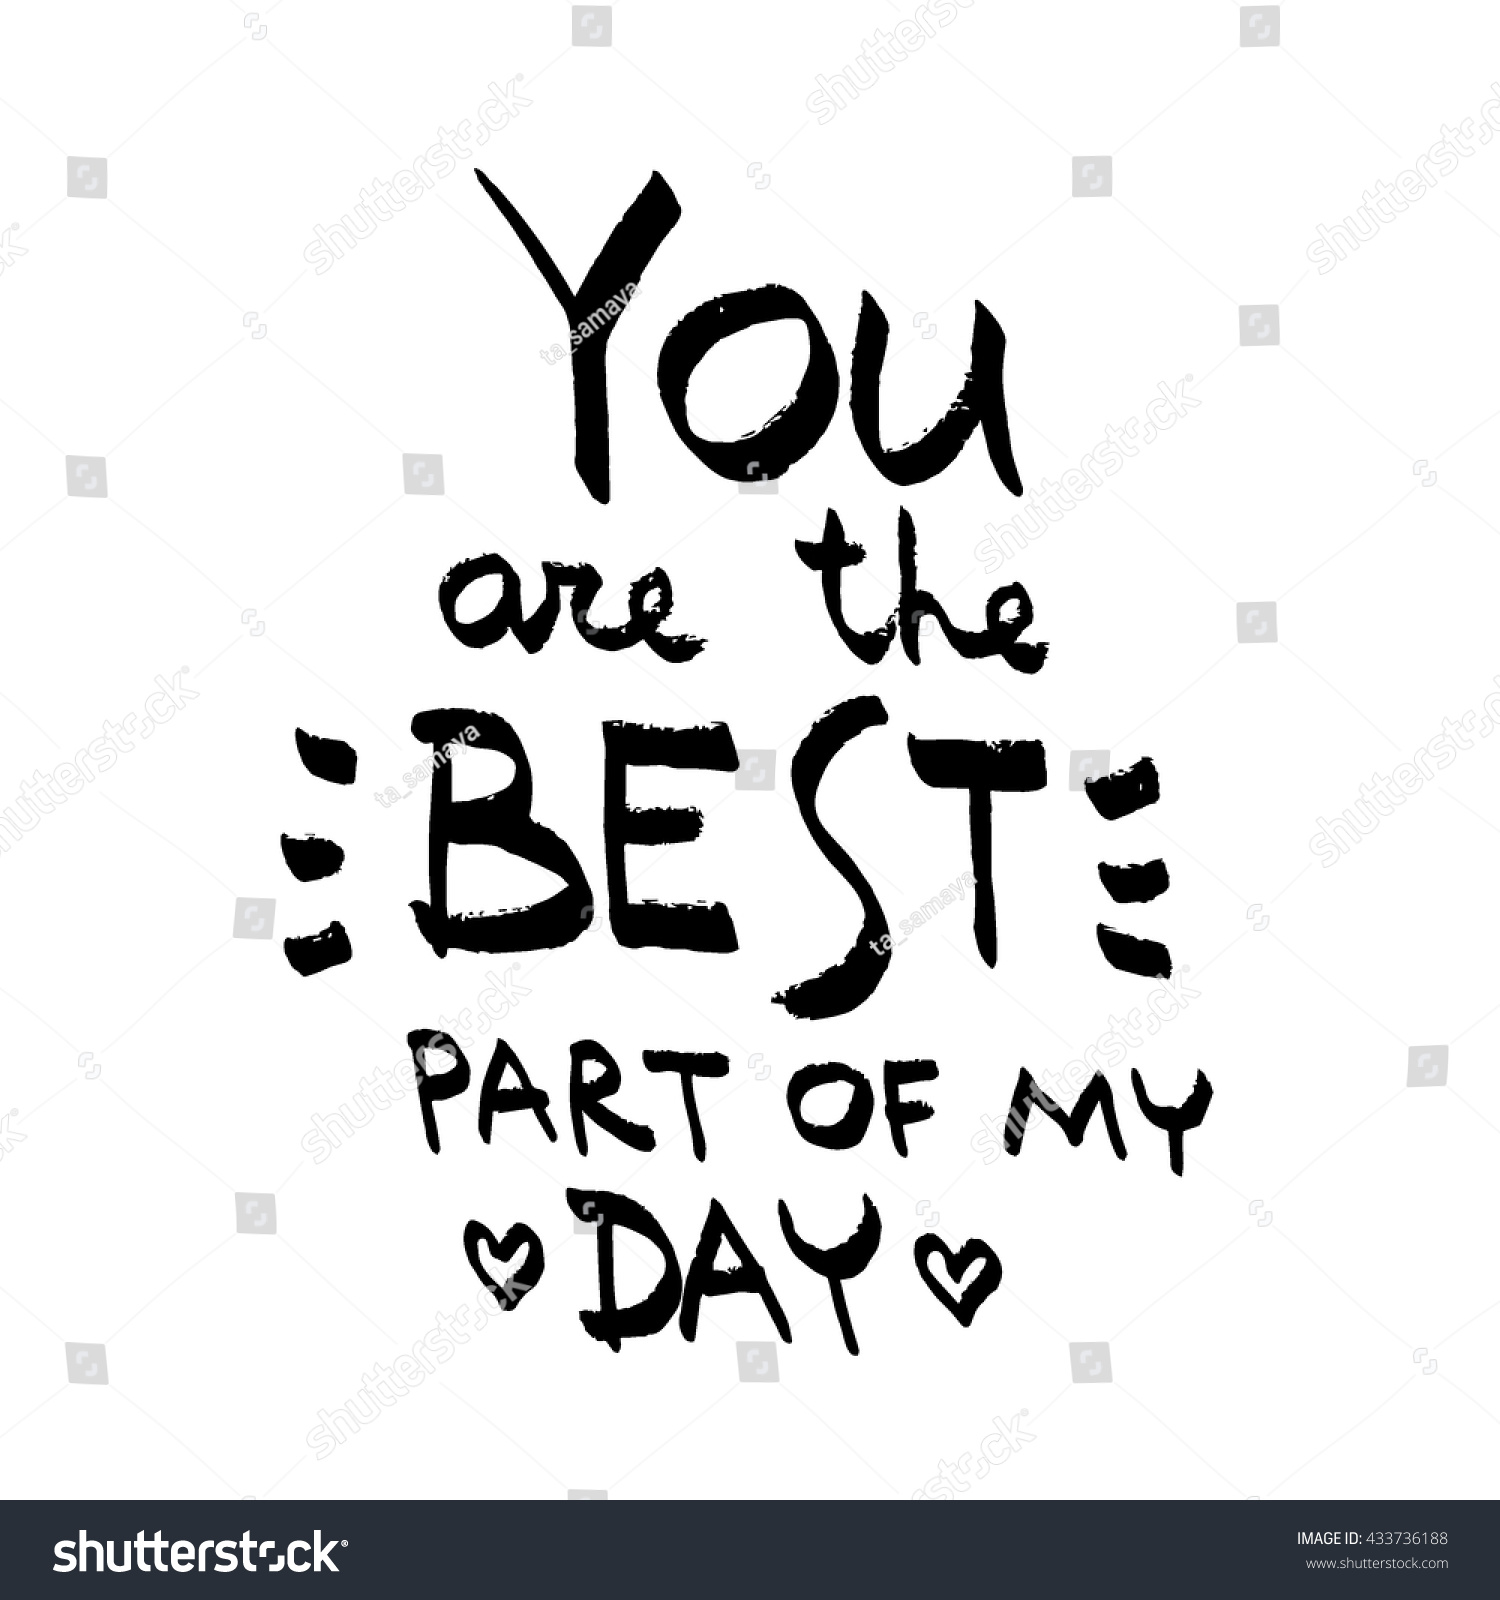 Best Part Of The Day Quotes: You Best Part My Day Lettering Stock Vector 433736188